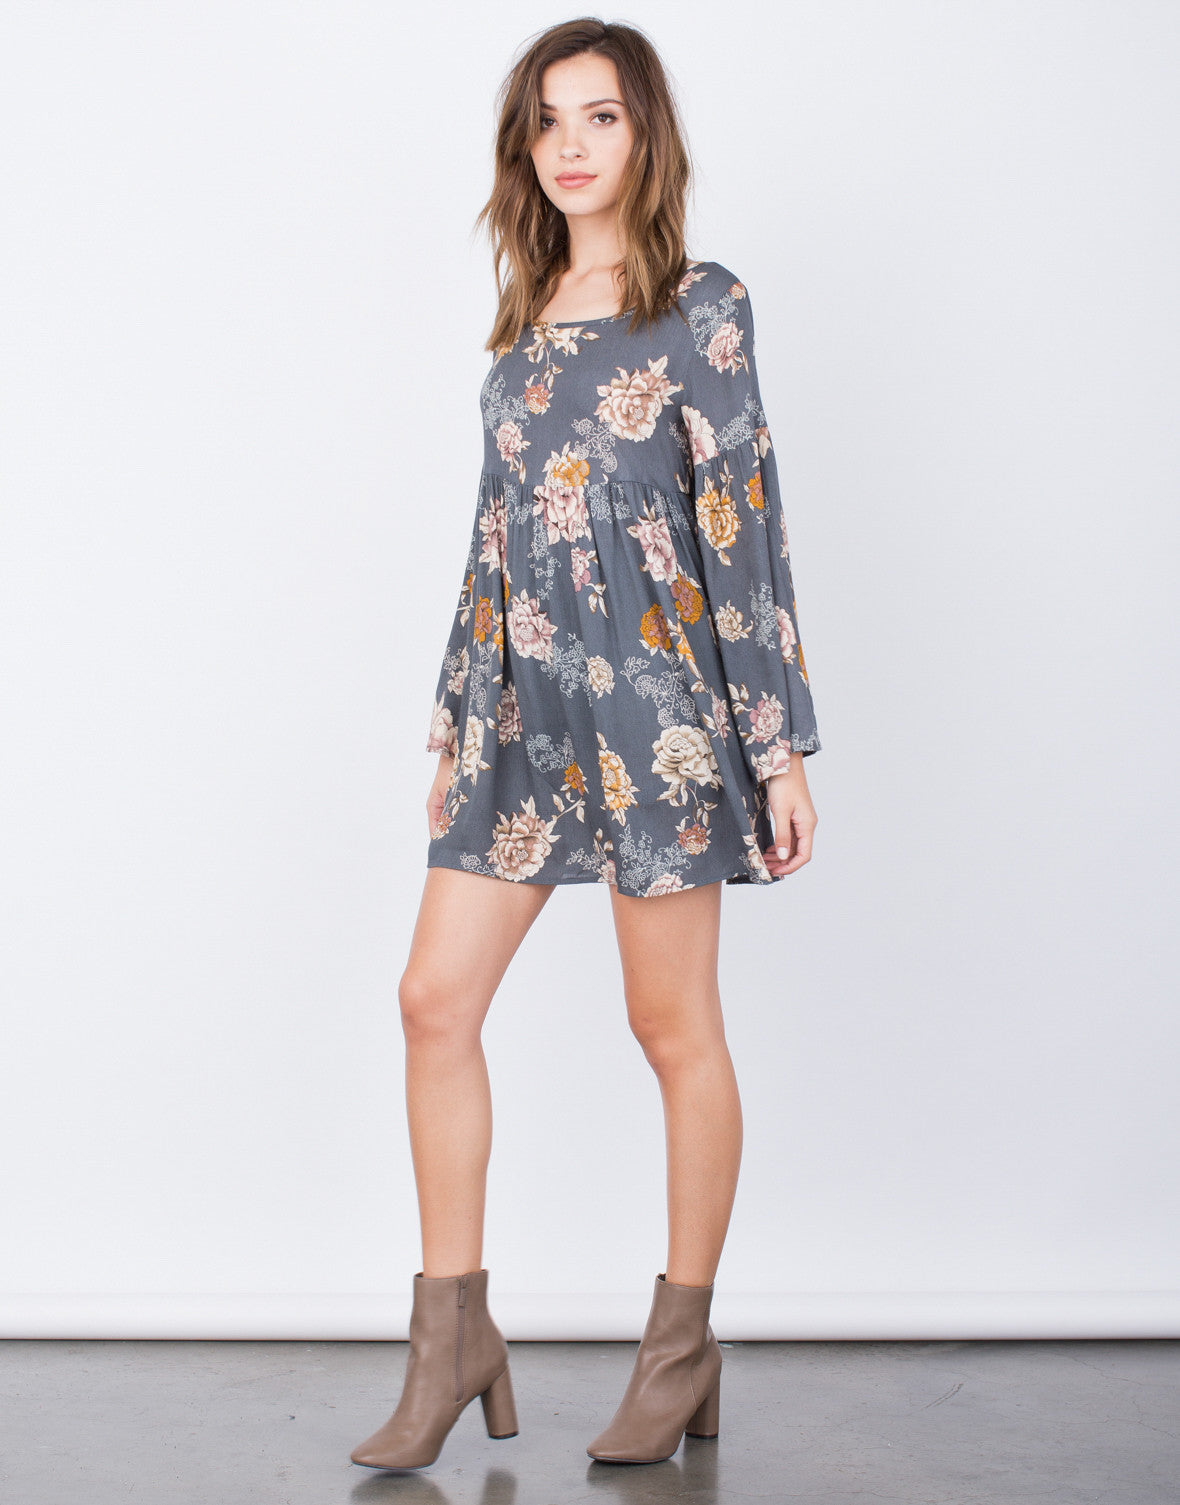 Side View of Autumn Florals Dress